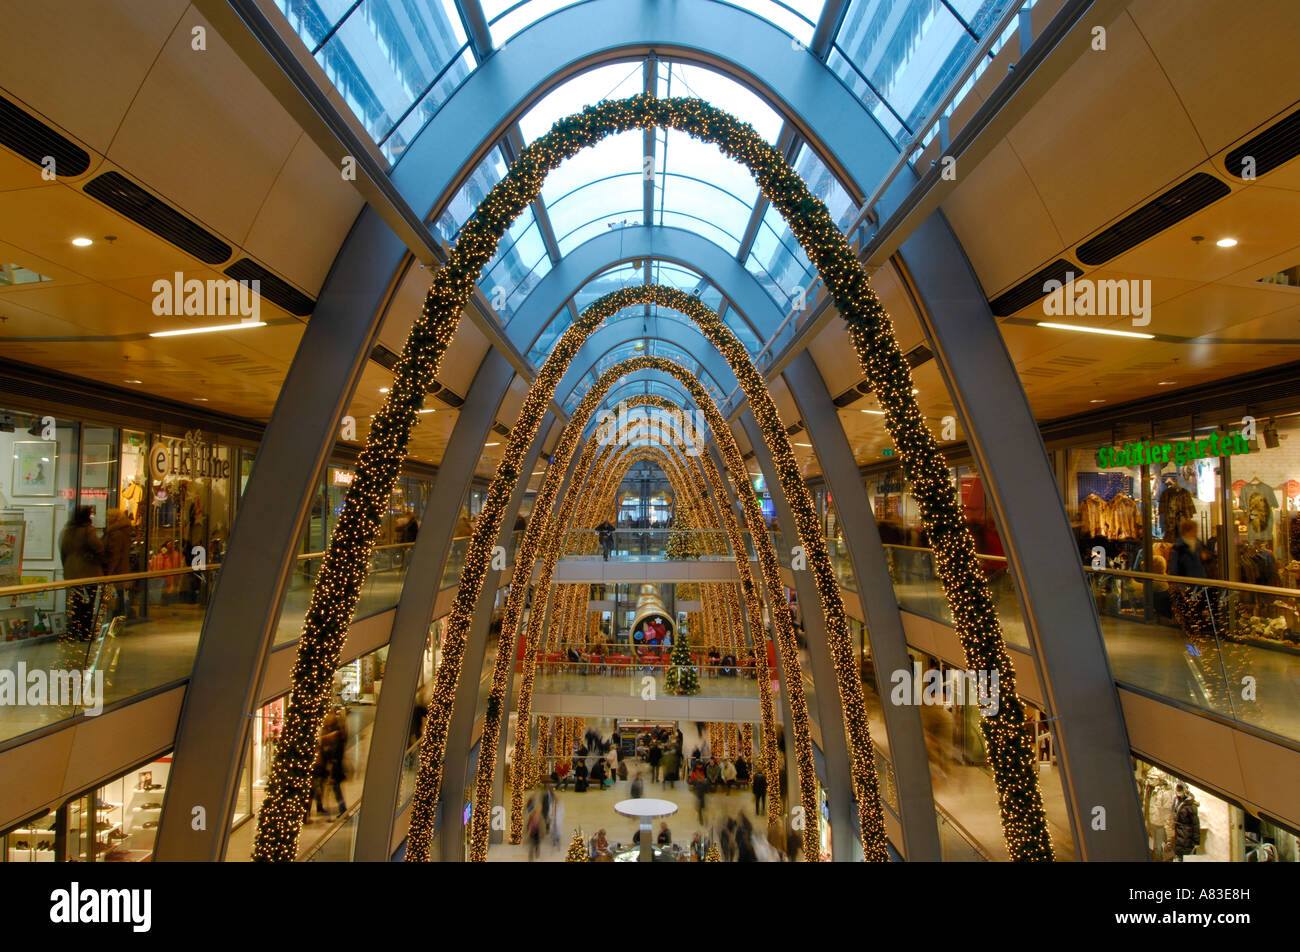 the new shopping mall europa passage while christmas time in hamburg stock photo royalty free. Black Bedroom Furniture Sets. Home Design Ideas